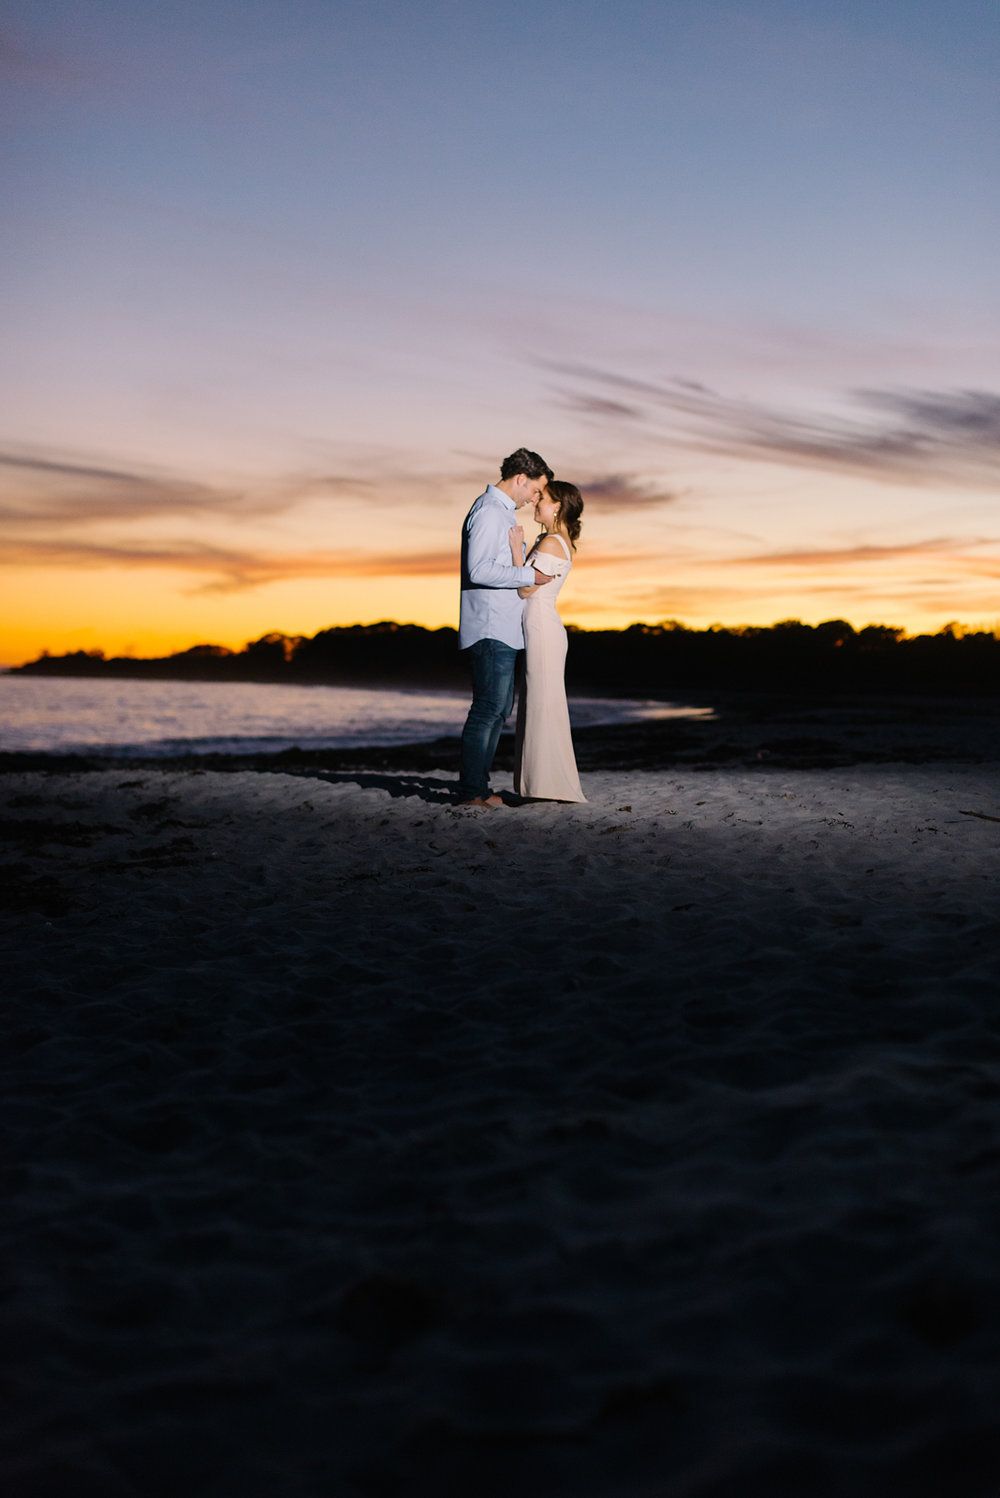 maineweddingphotography.jendeanphoto.5206-Edit.jpg